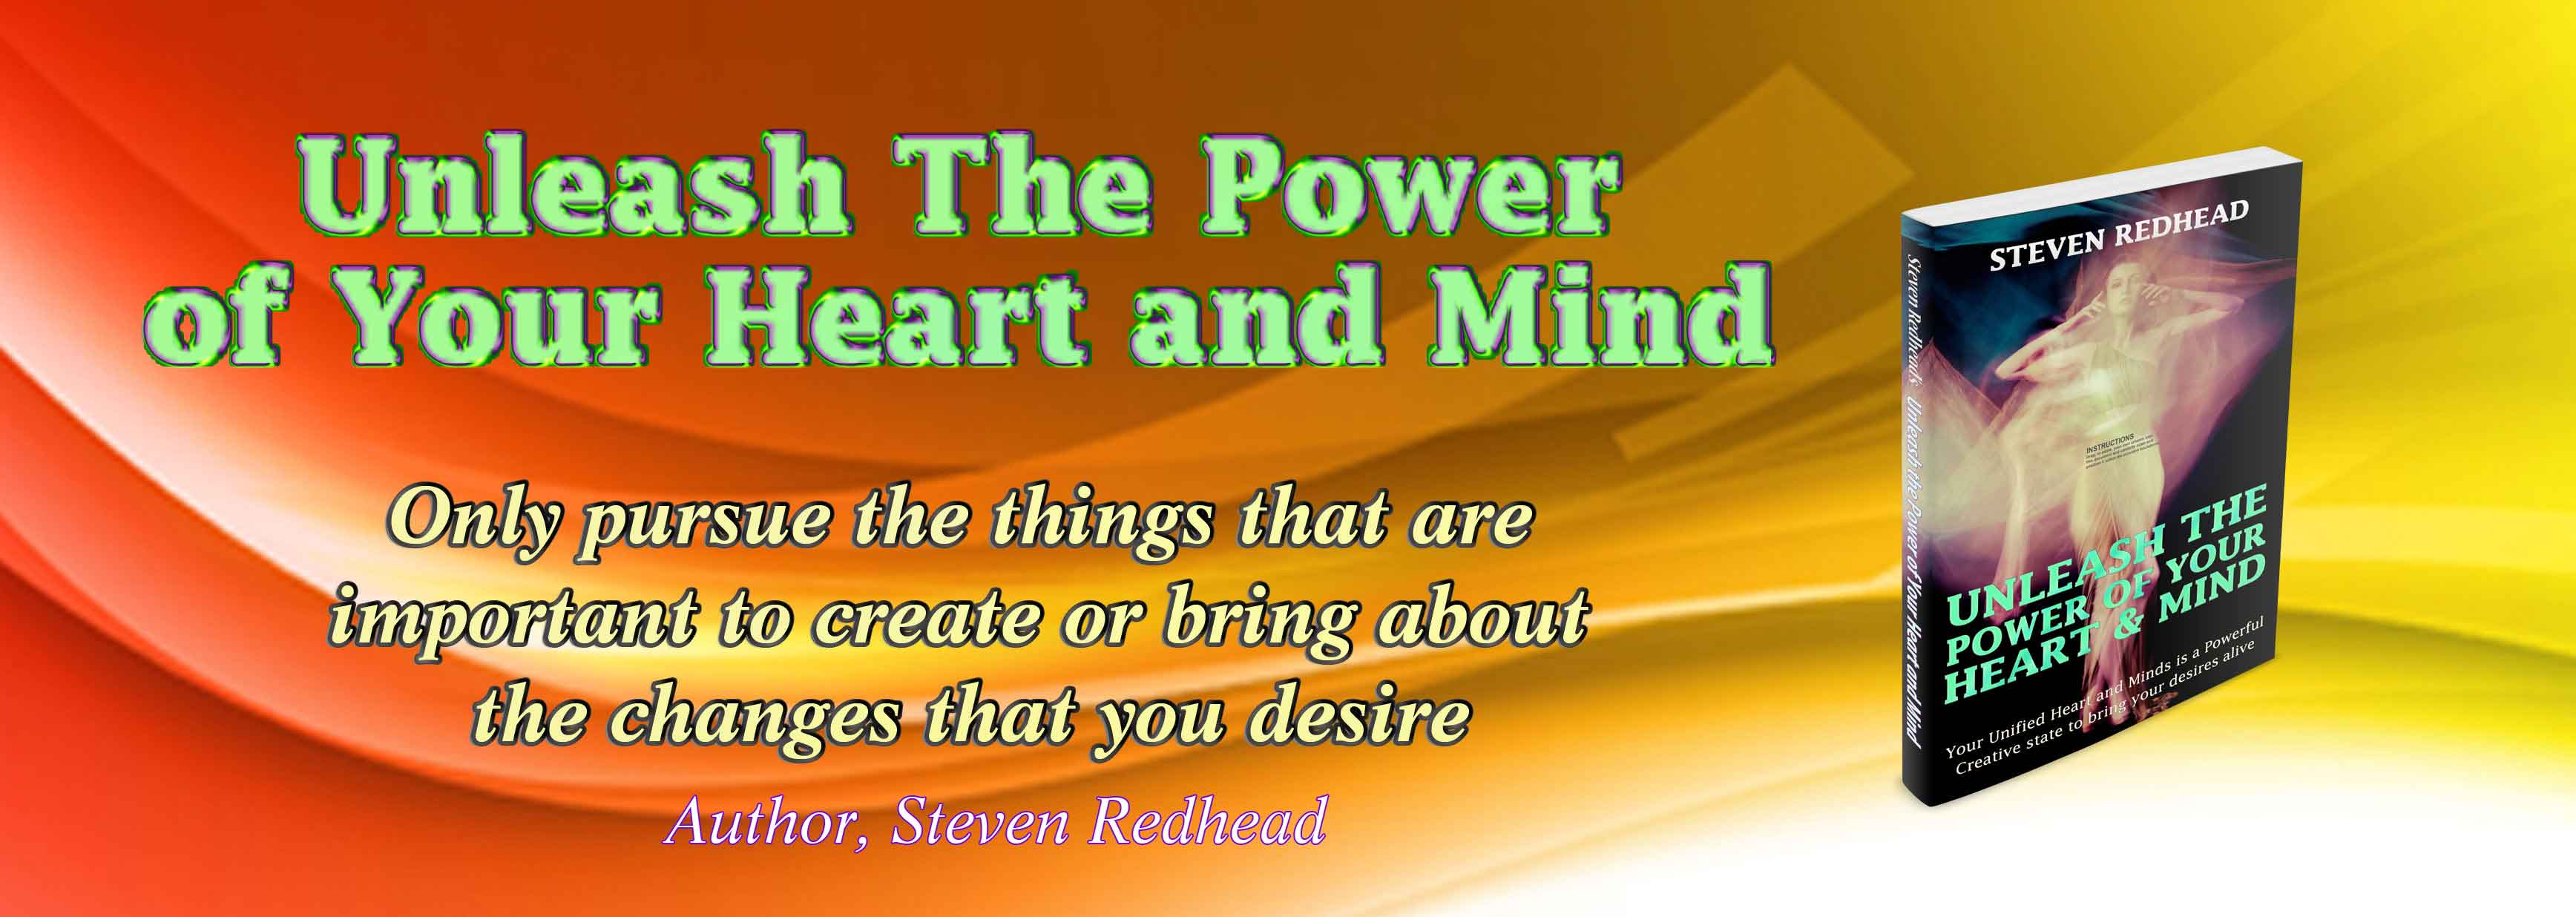 Unleash The Power of Your Heart and Mind Quote